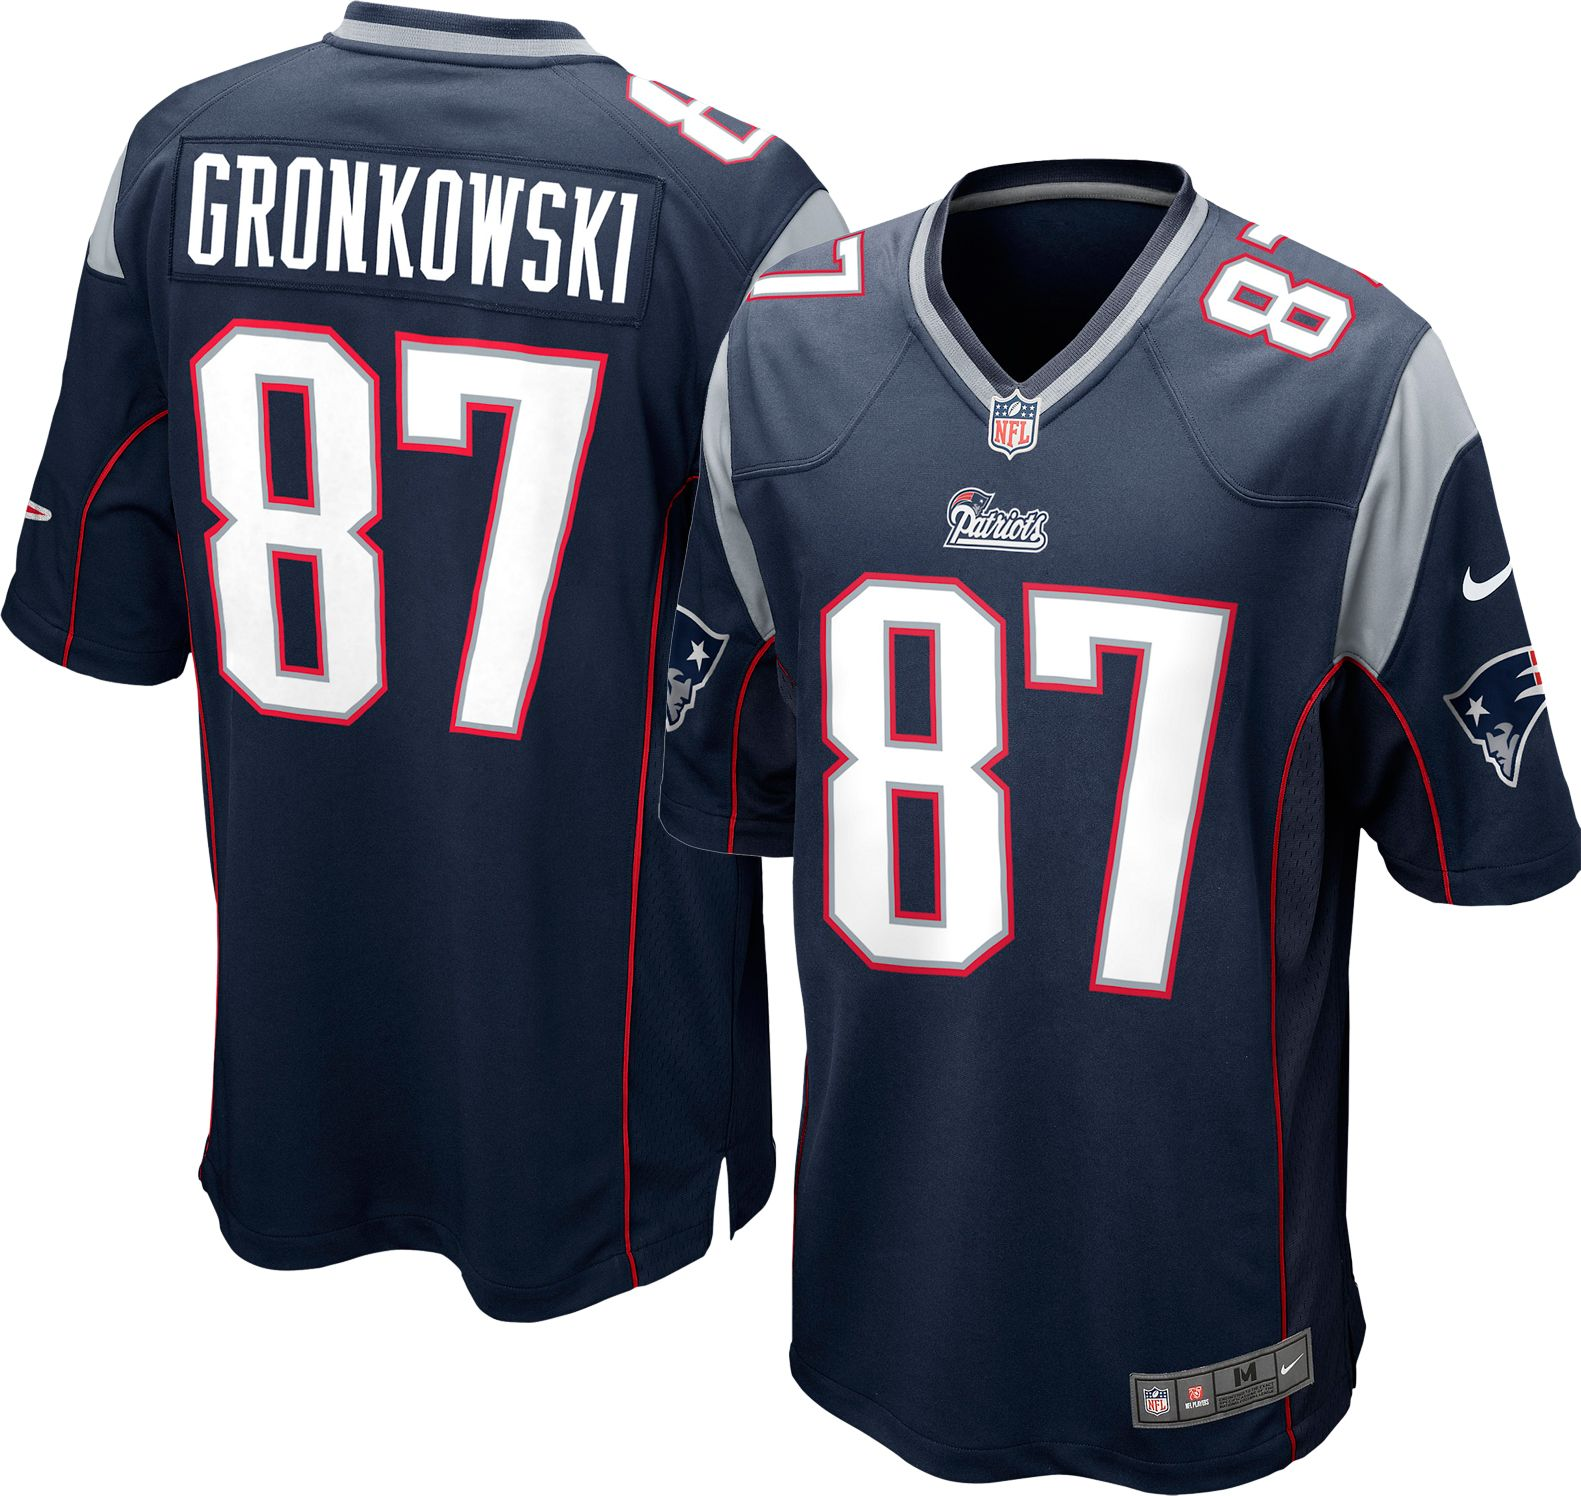 buy popular bceb4 dde89 rob gronkowski nfl jersey